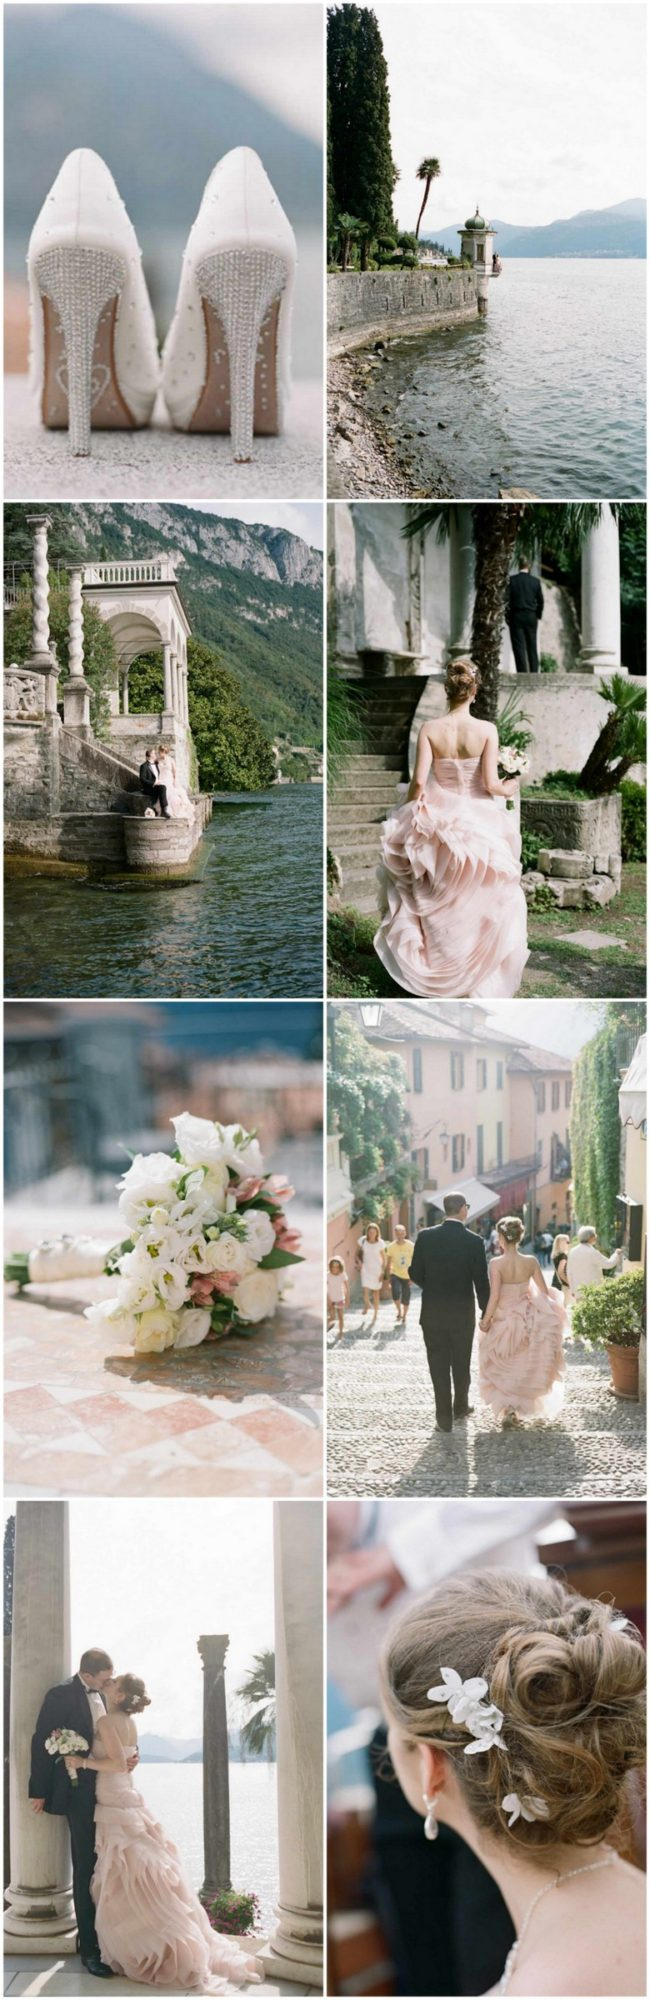 Elegant Lake Como Elopement in Italy